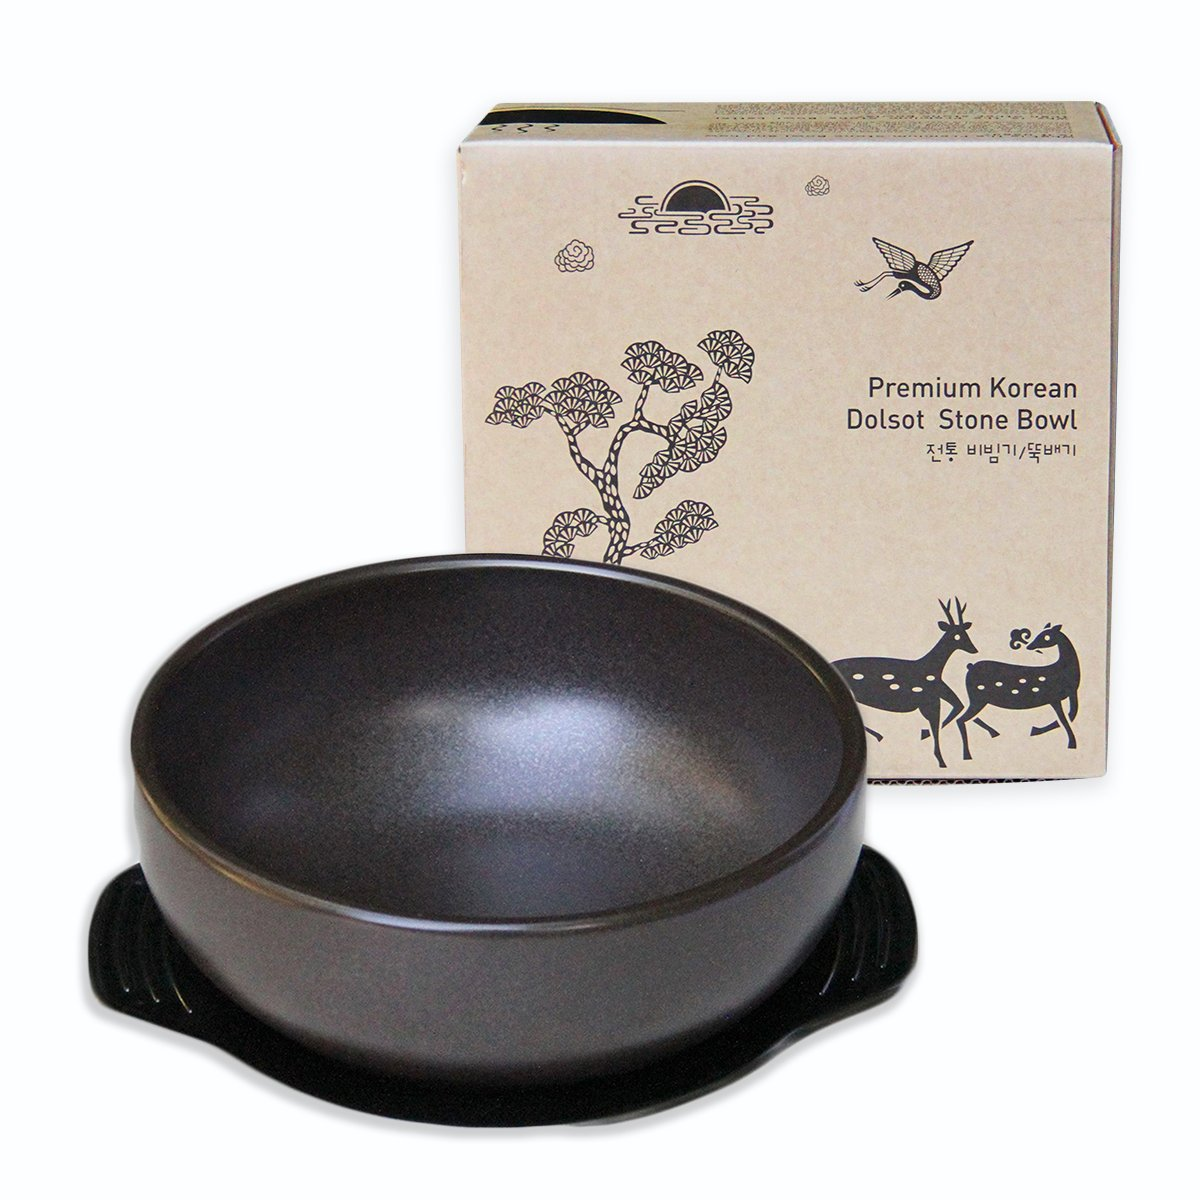 Crazy Korean Cooking Korean Stone Bowl (Dolsot), Sizzling Hot Pot for Bibimbap and Soup (Large, No Lid) - Premium Ceramic